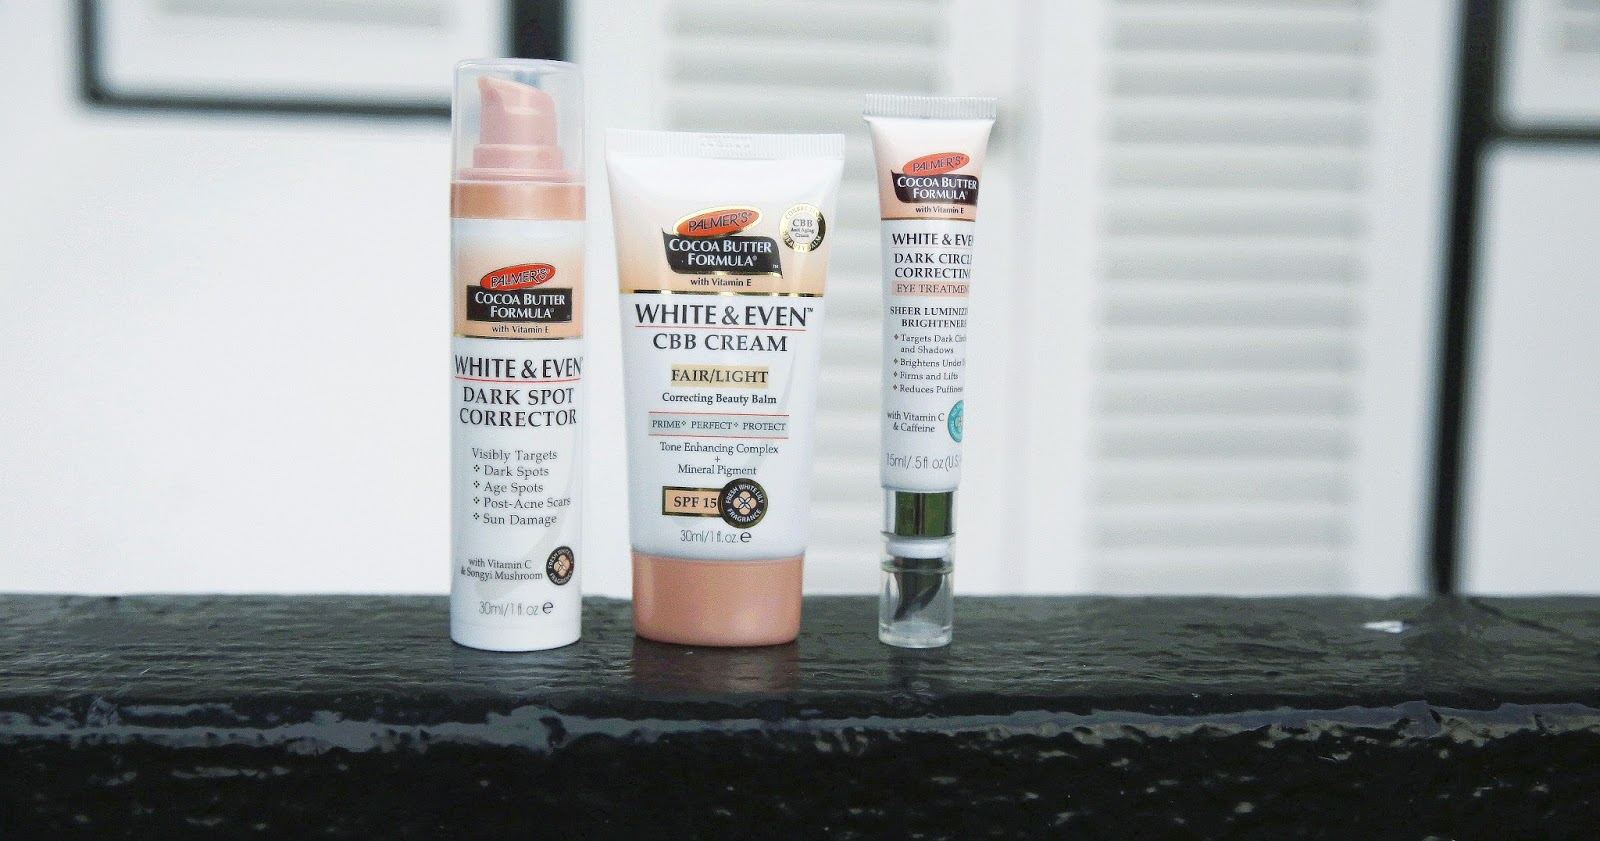 Palmer's White & Even Skincare for Pigmentation Issues